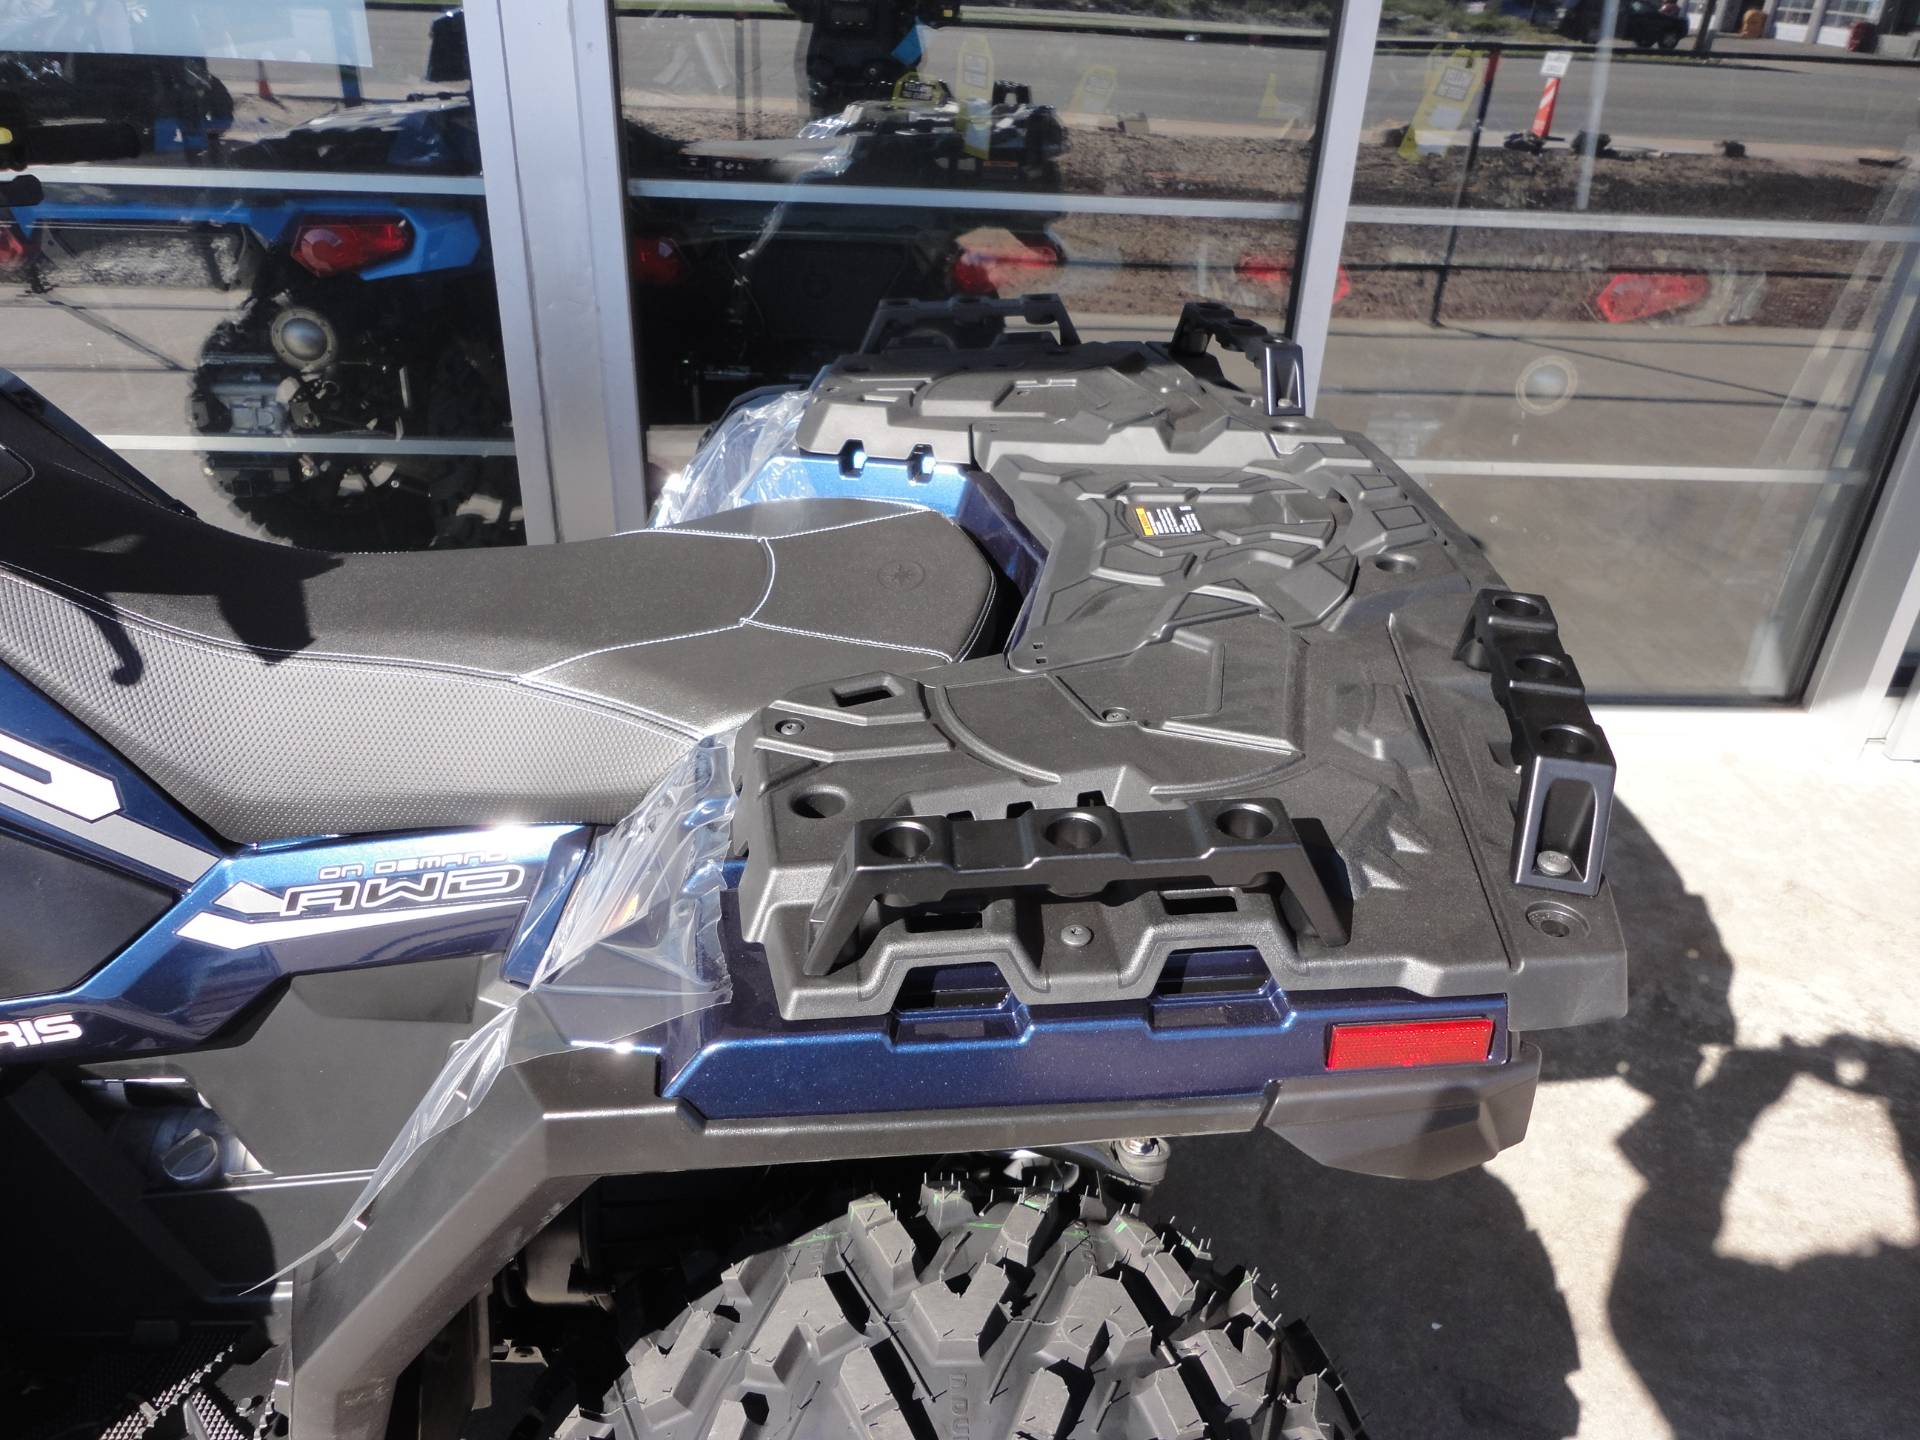 2019 Polaris Sportsman XP 1000 Premium in Denver, Colorado - Photo 8